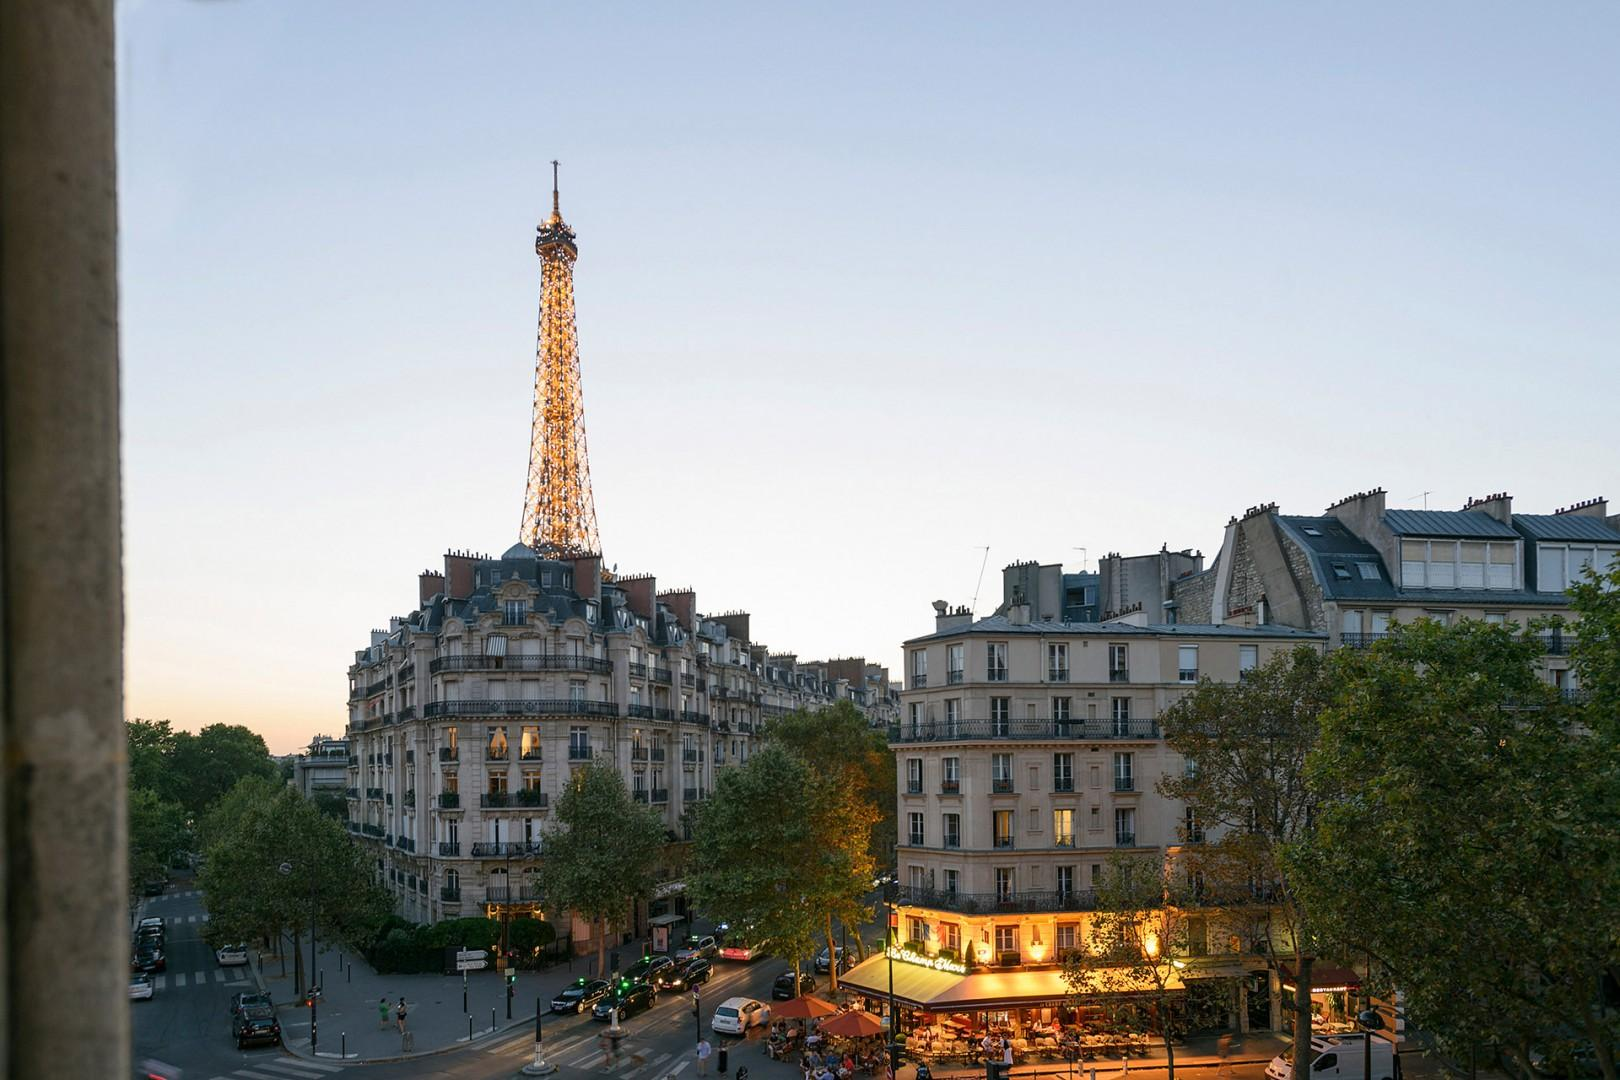 Watch the sunset and the Eiffel Tower light up at night!